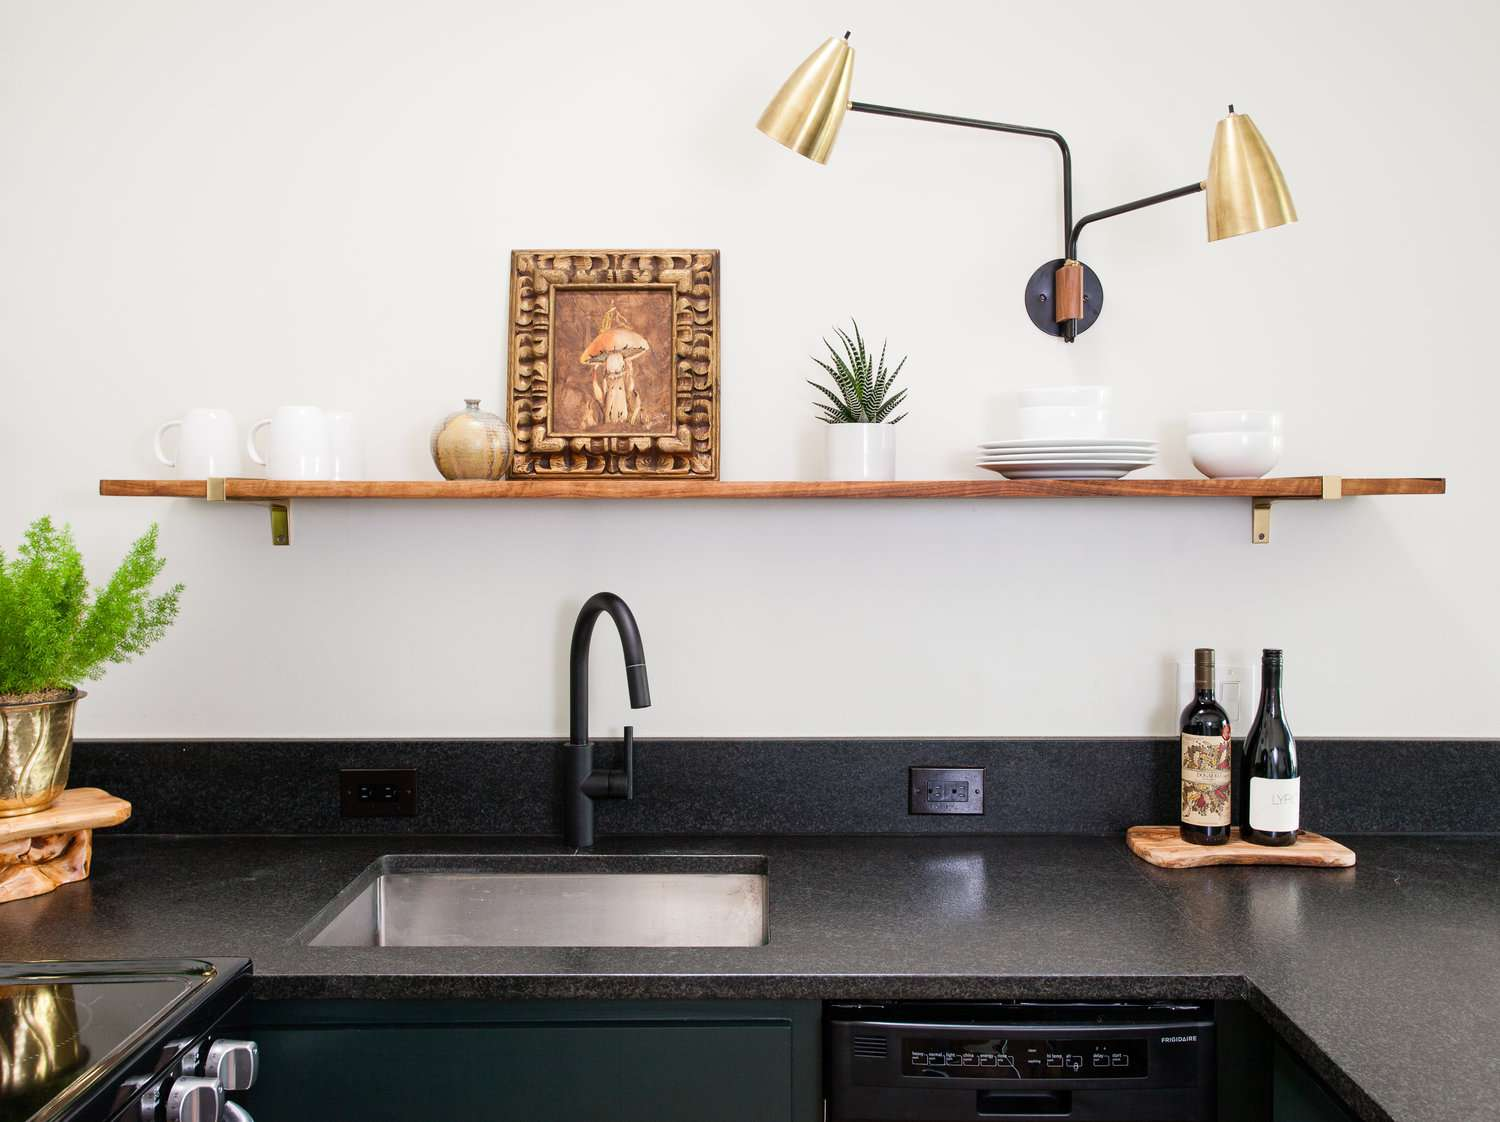 A sleek kitchen filled with rustic wooden shelves and accents